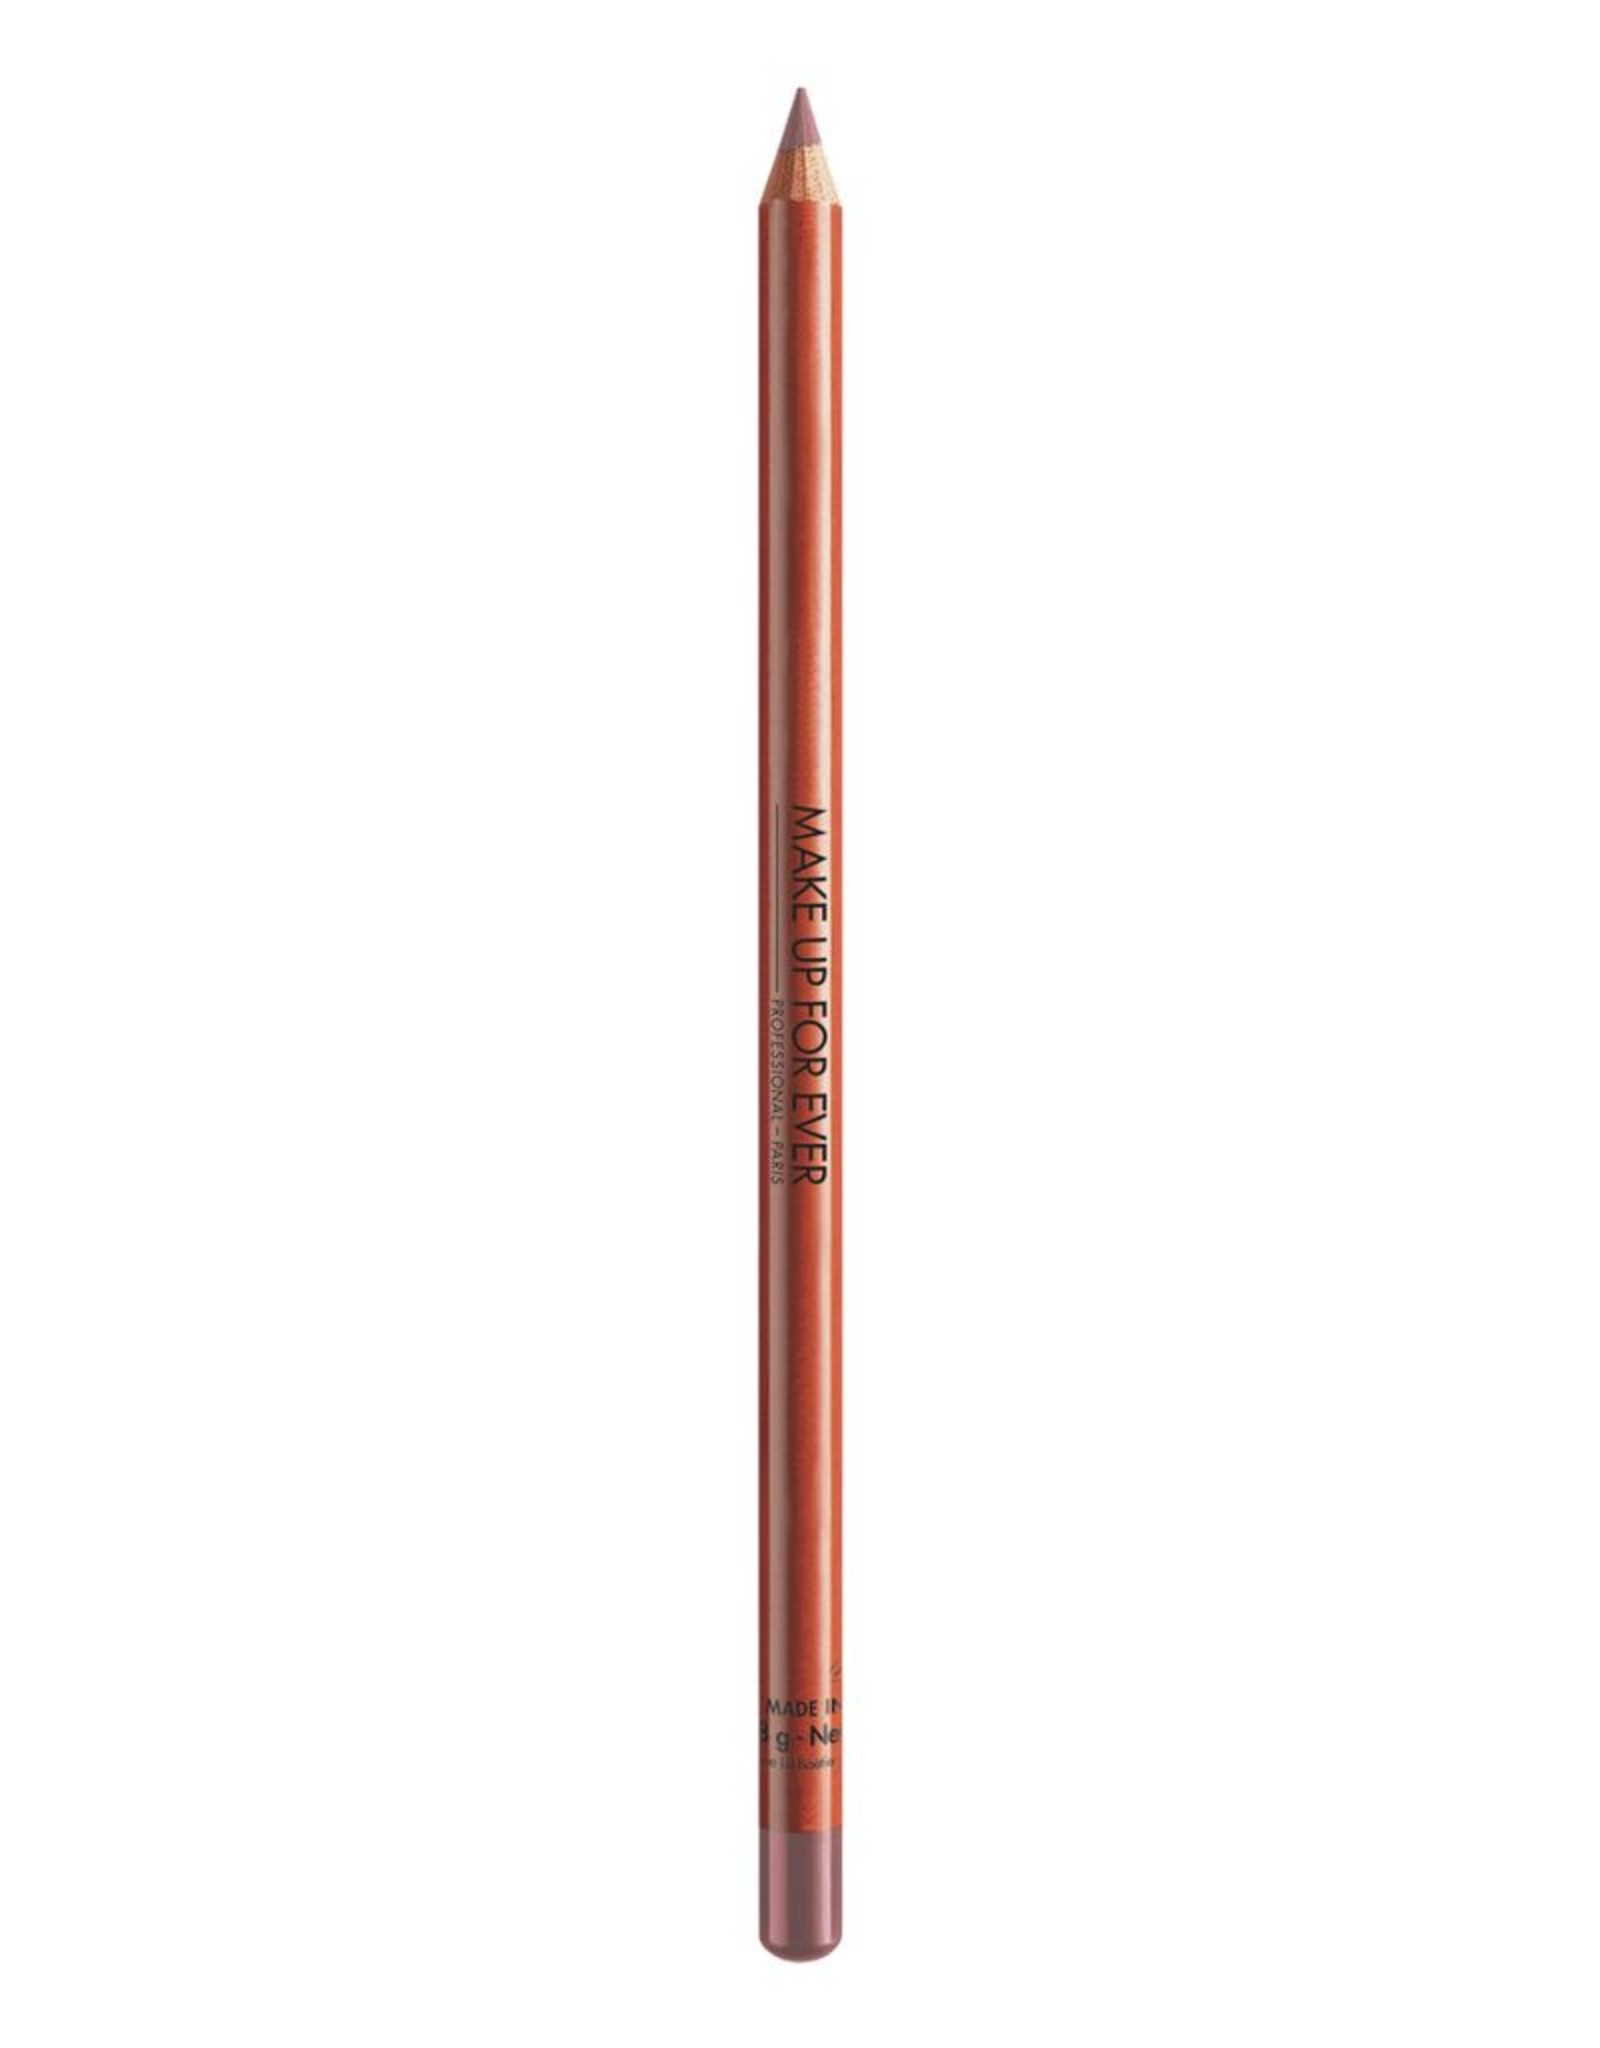 MUFE CRAYON LEVRES 1,8g N26 rose anglais /  dusty pink